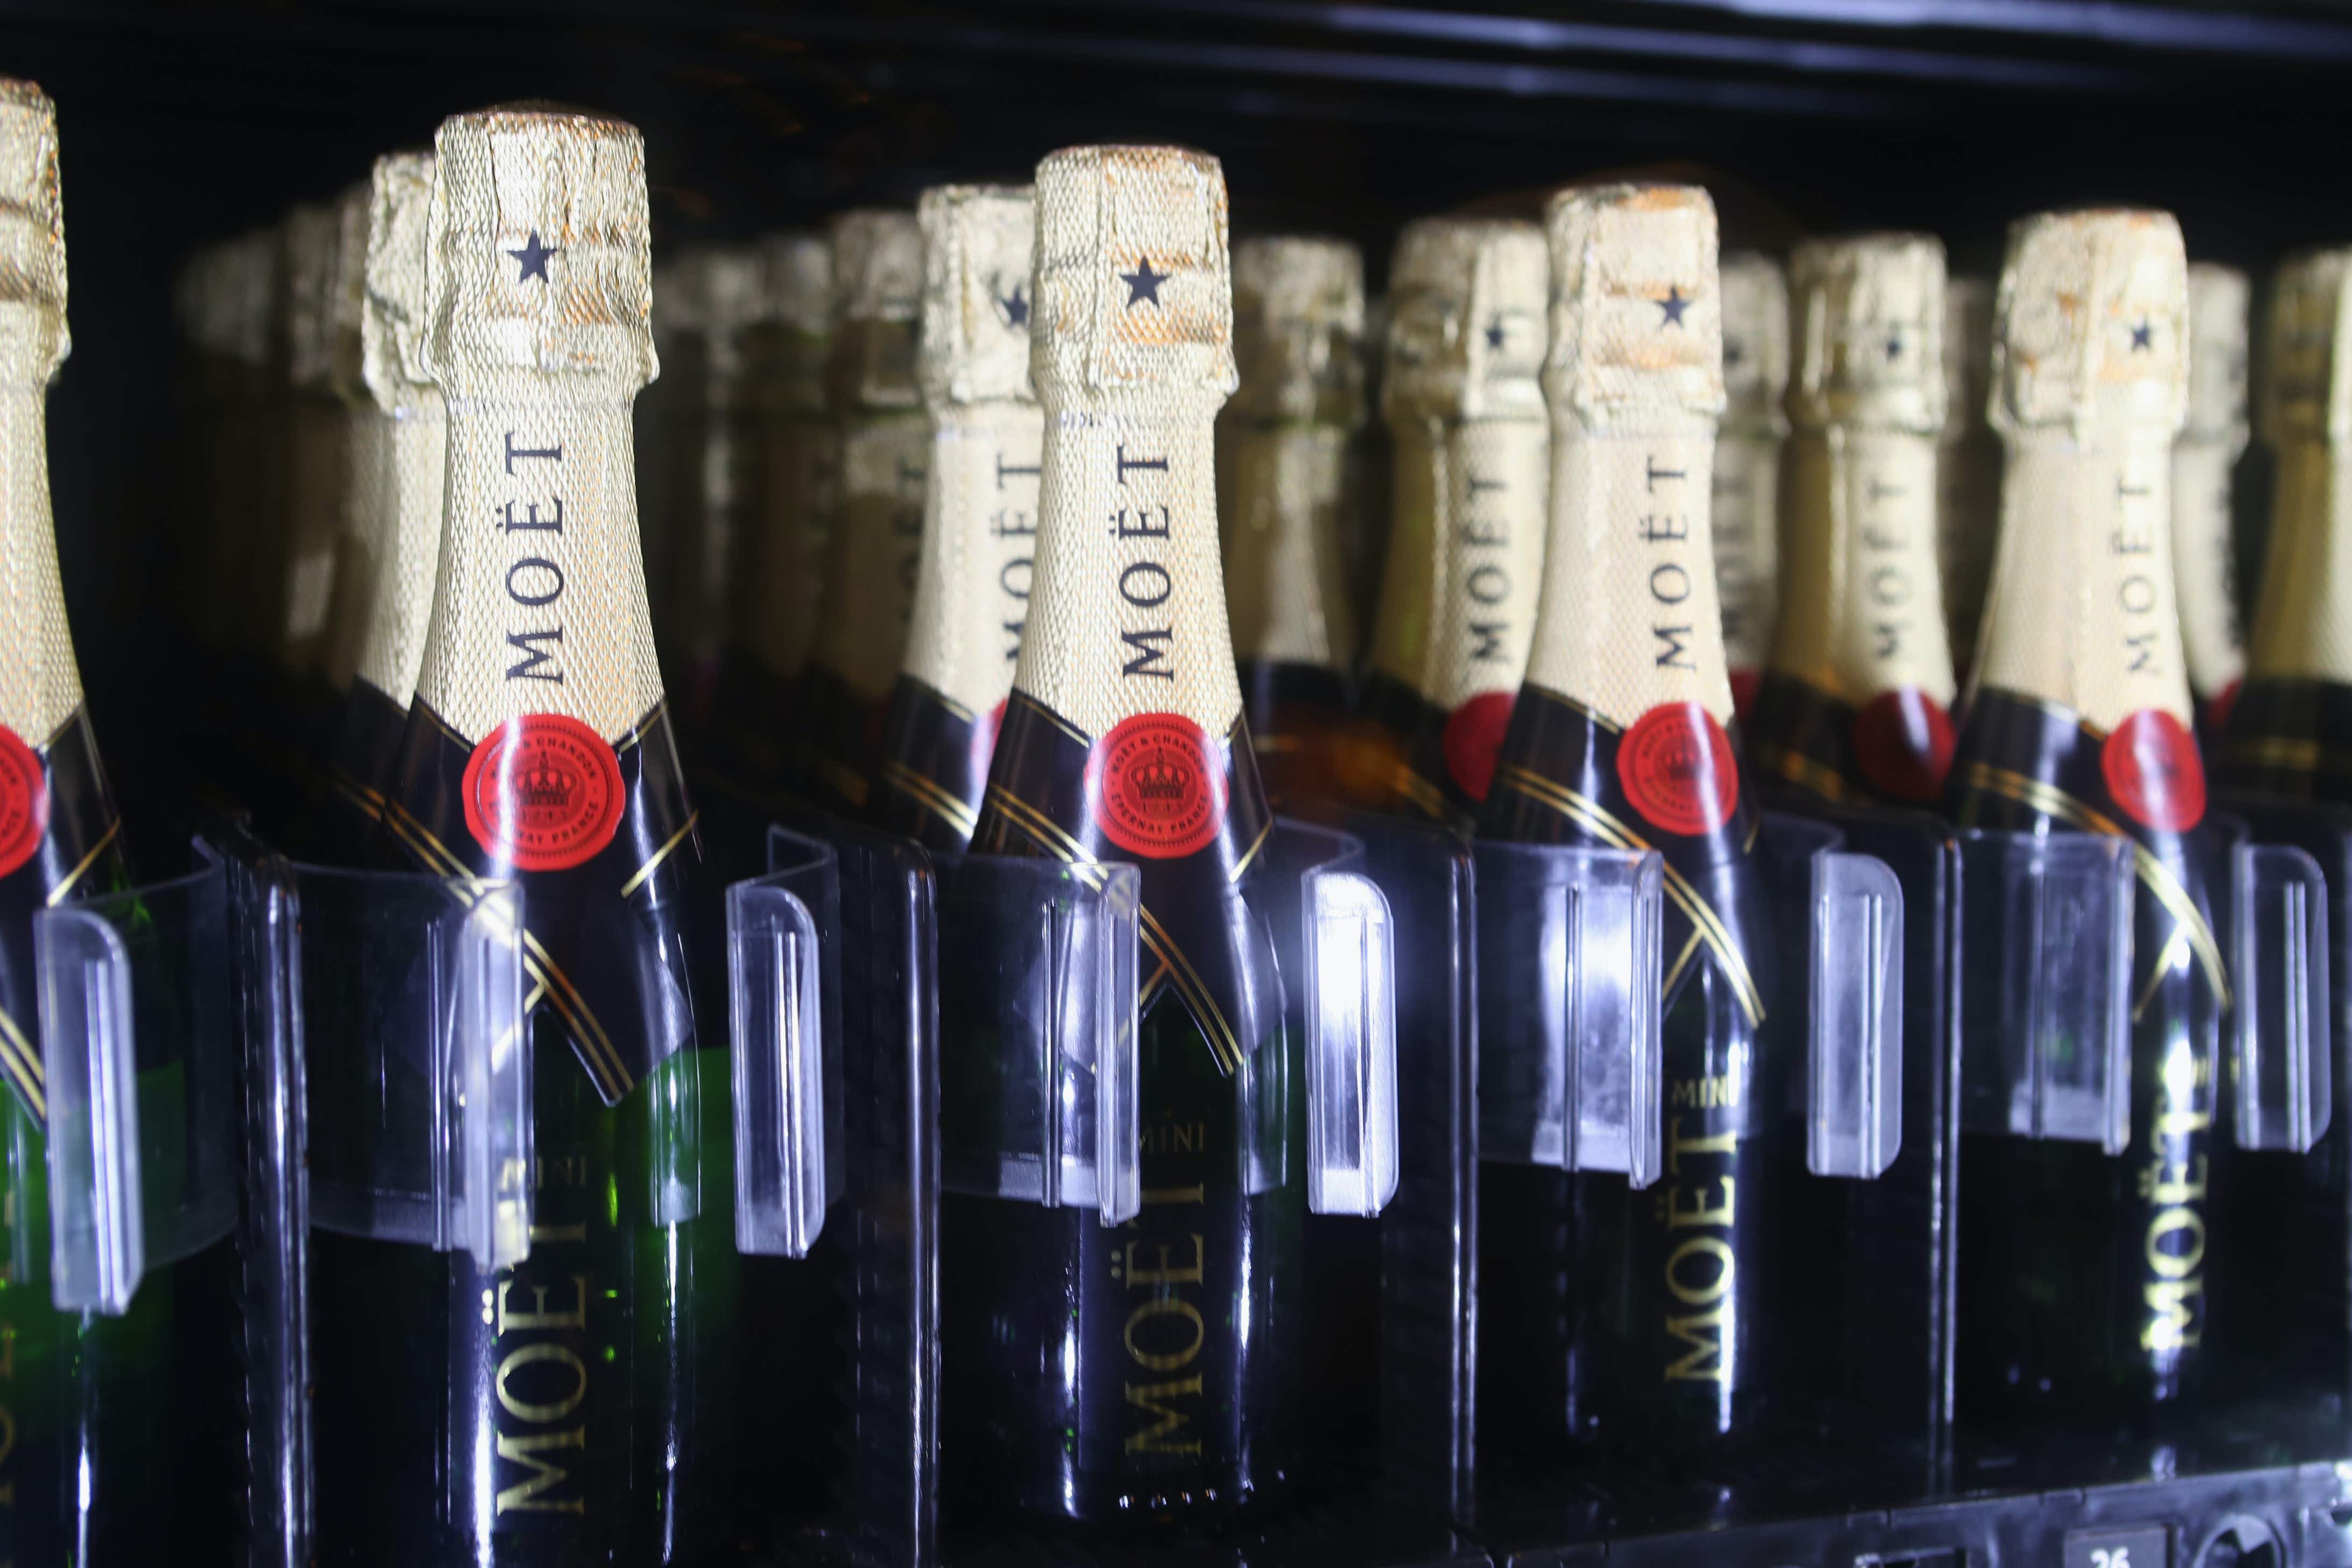 Time to celebrate in the Big Easy as New Orleans gets a Champagne vending machine